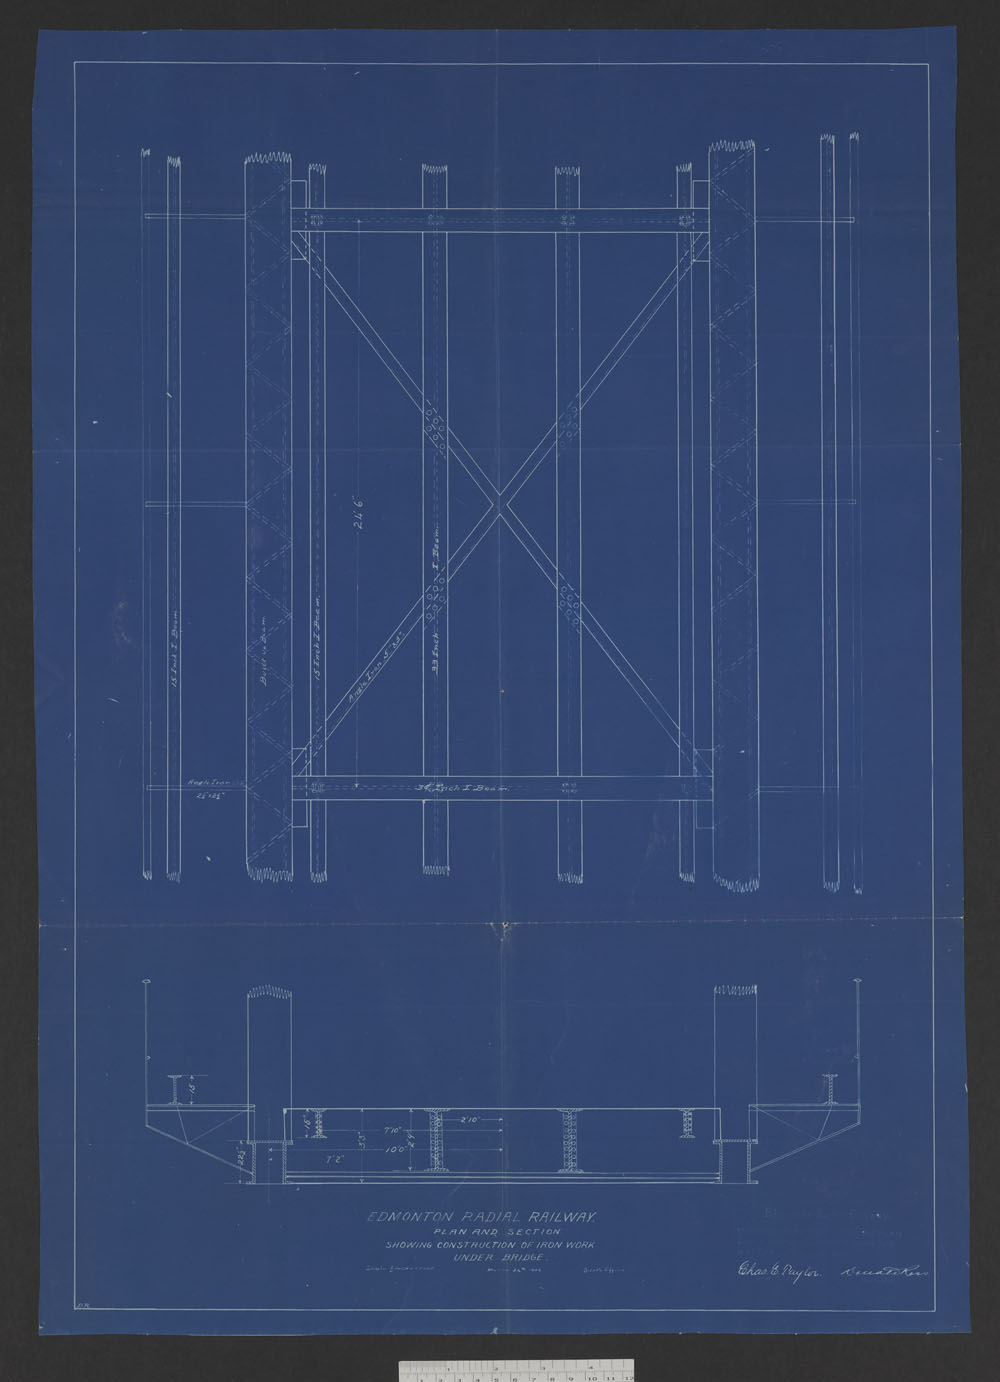 Edmonton Radial Railway - Plan and section showing construction of iron works under bridge. (item 9)